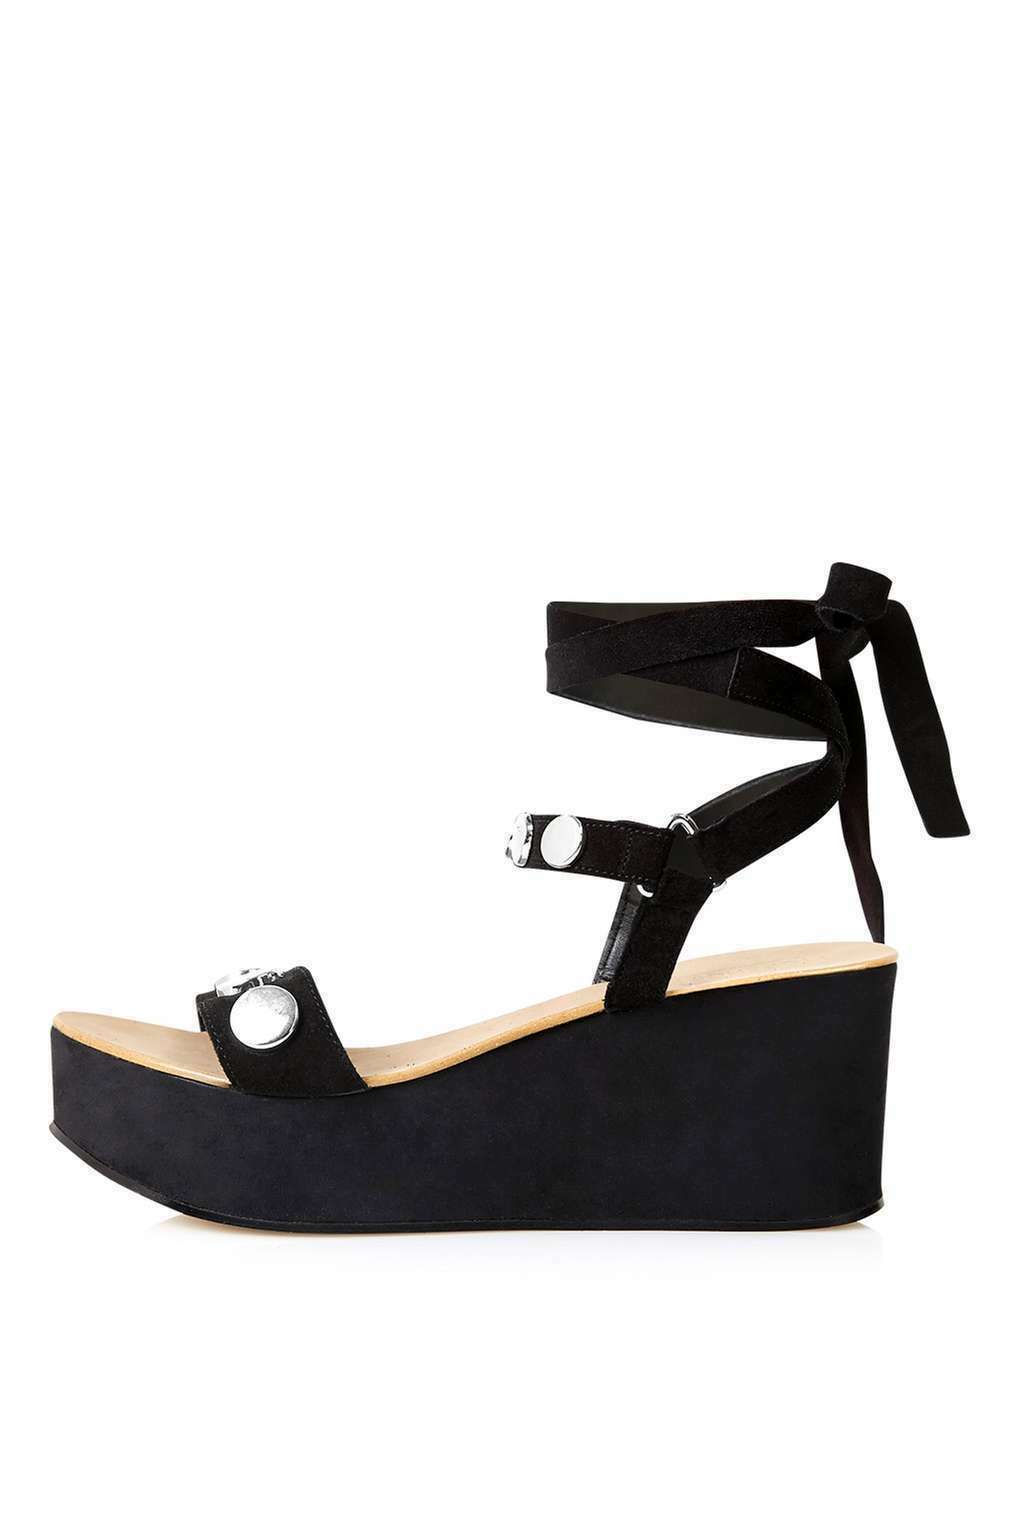 BN TOPSHOP WICKED Stud Wedge Sandal - BLACK UK 4